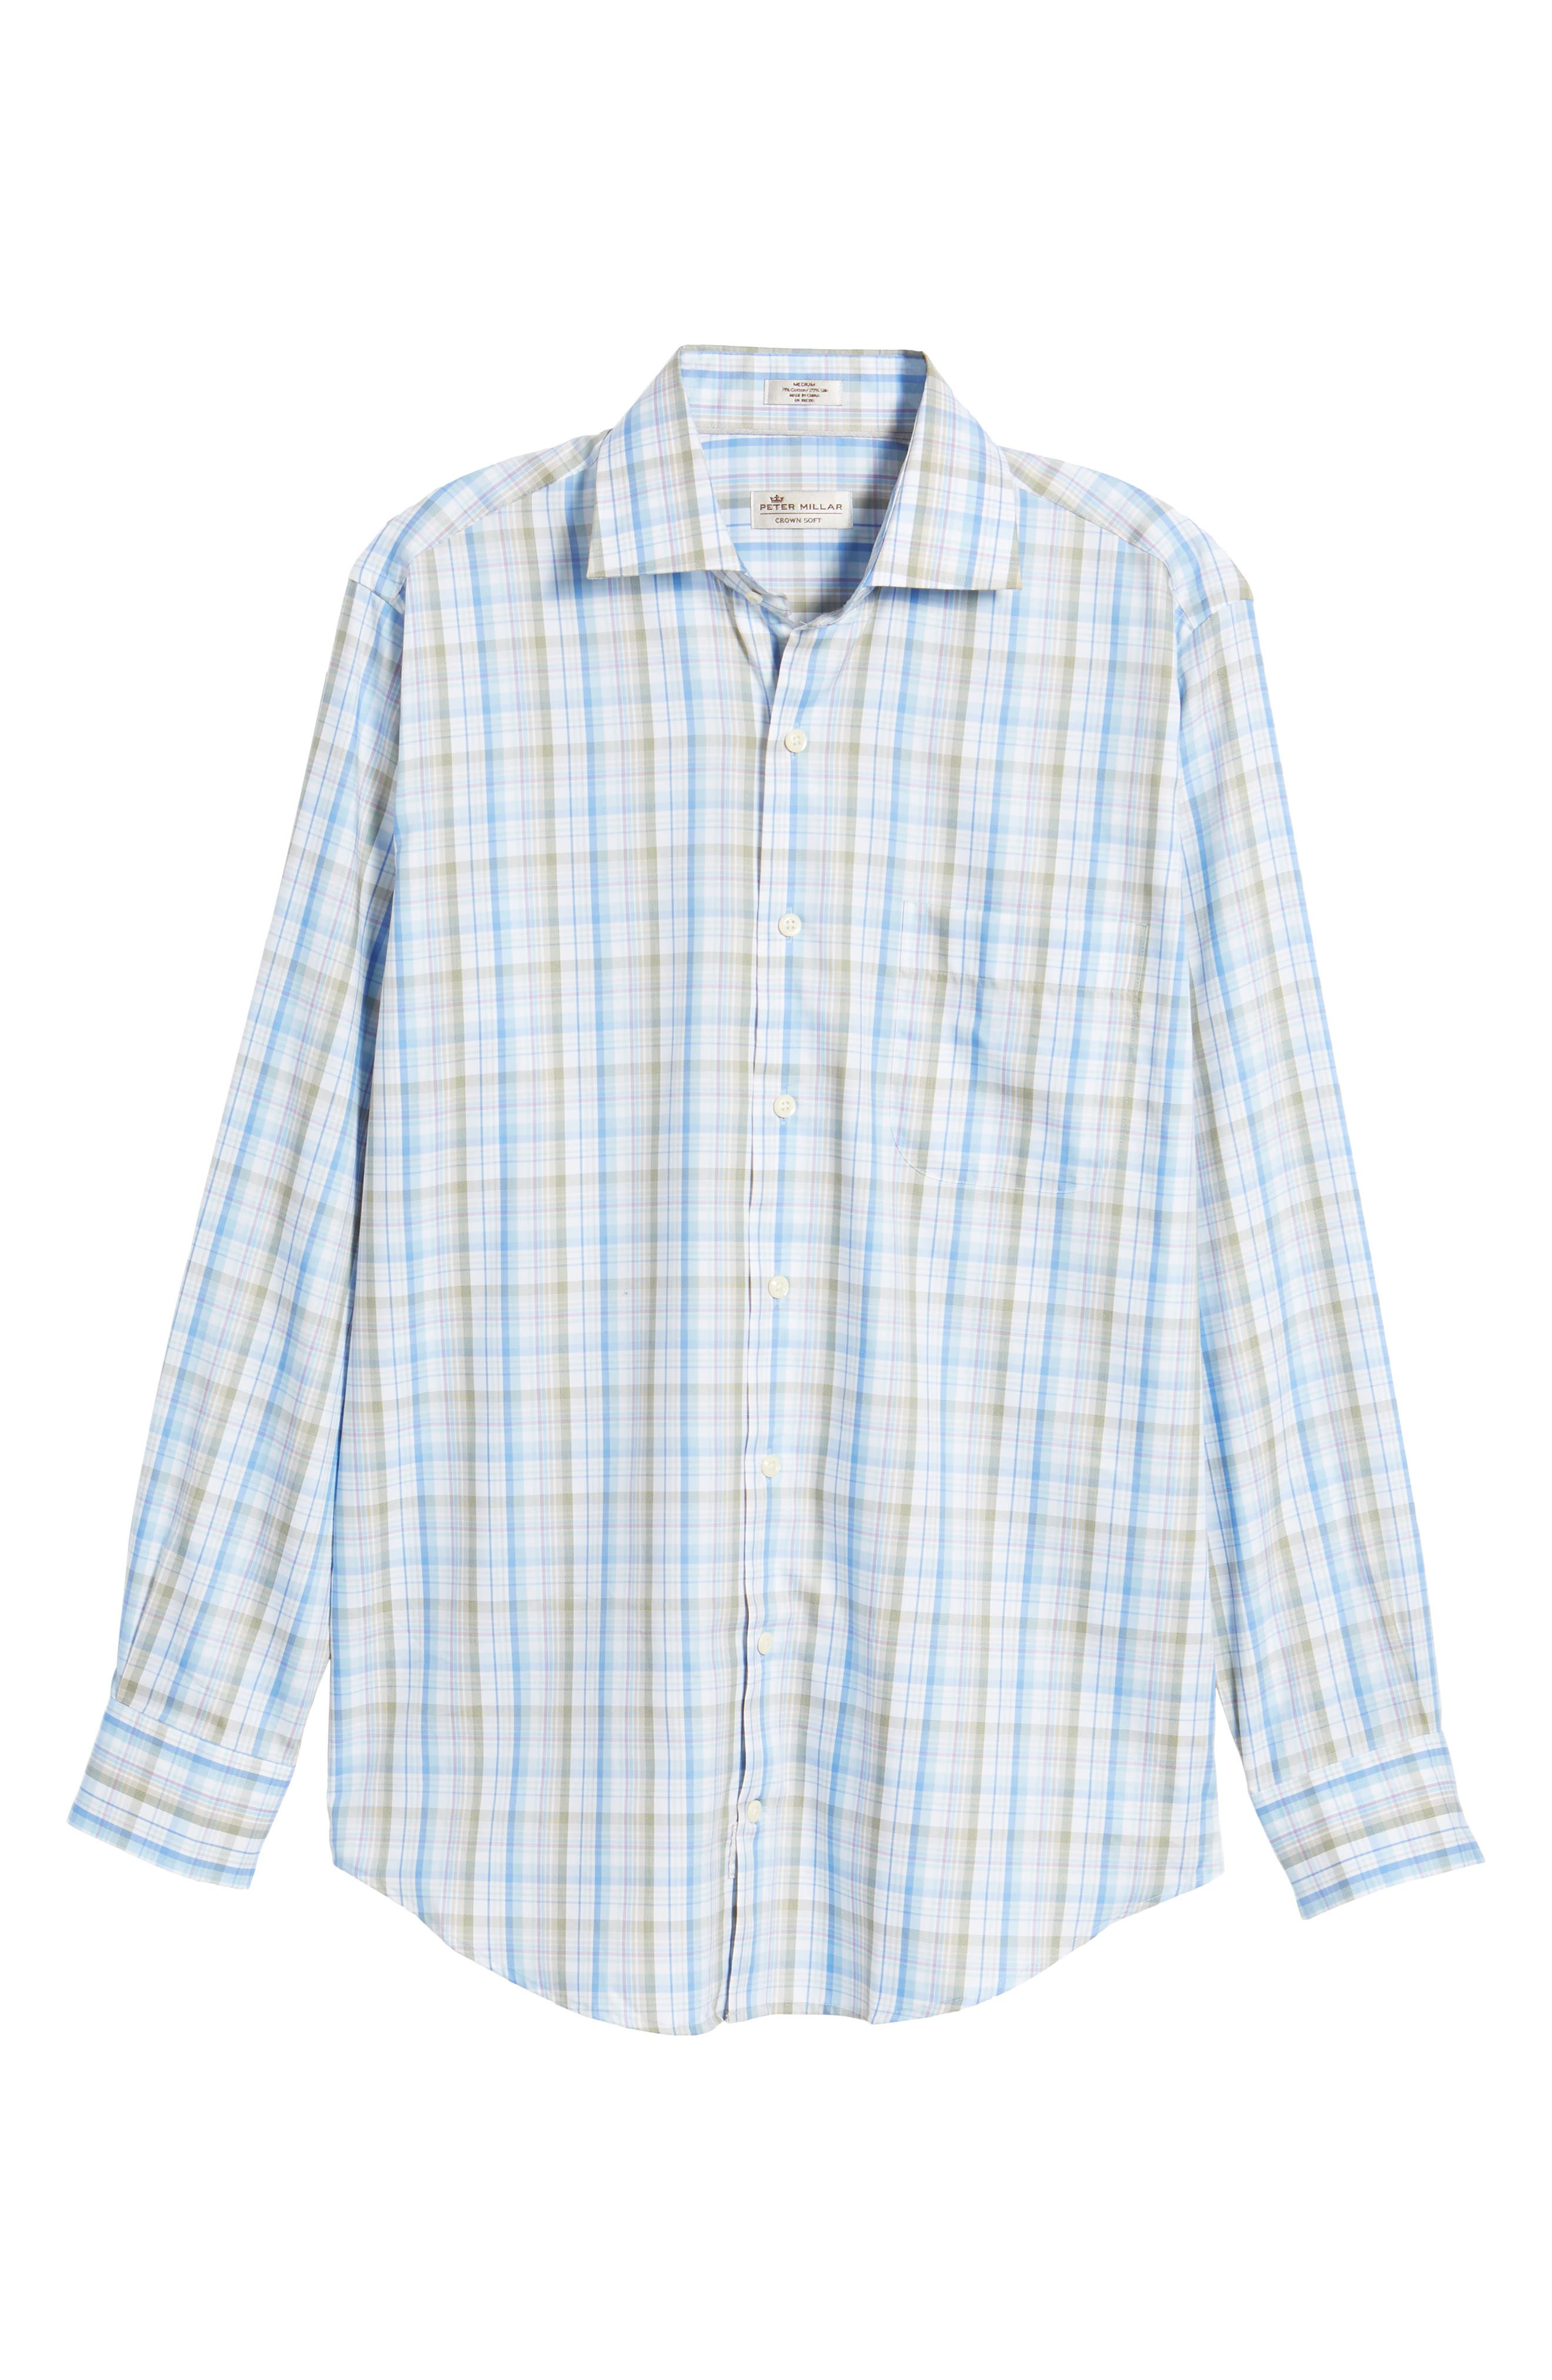 Crown Waterway Plaid Sport Shirt,                             Alternate thumbnail 6, color,                             418